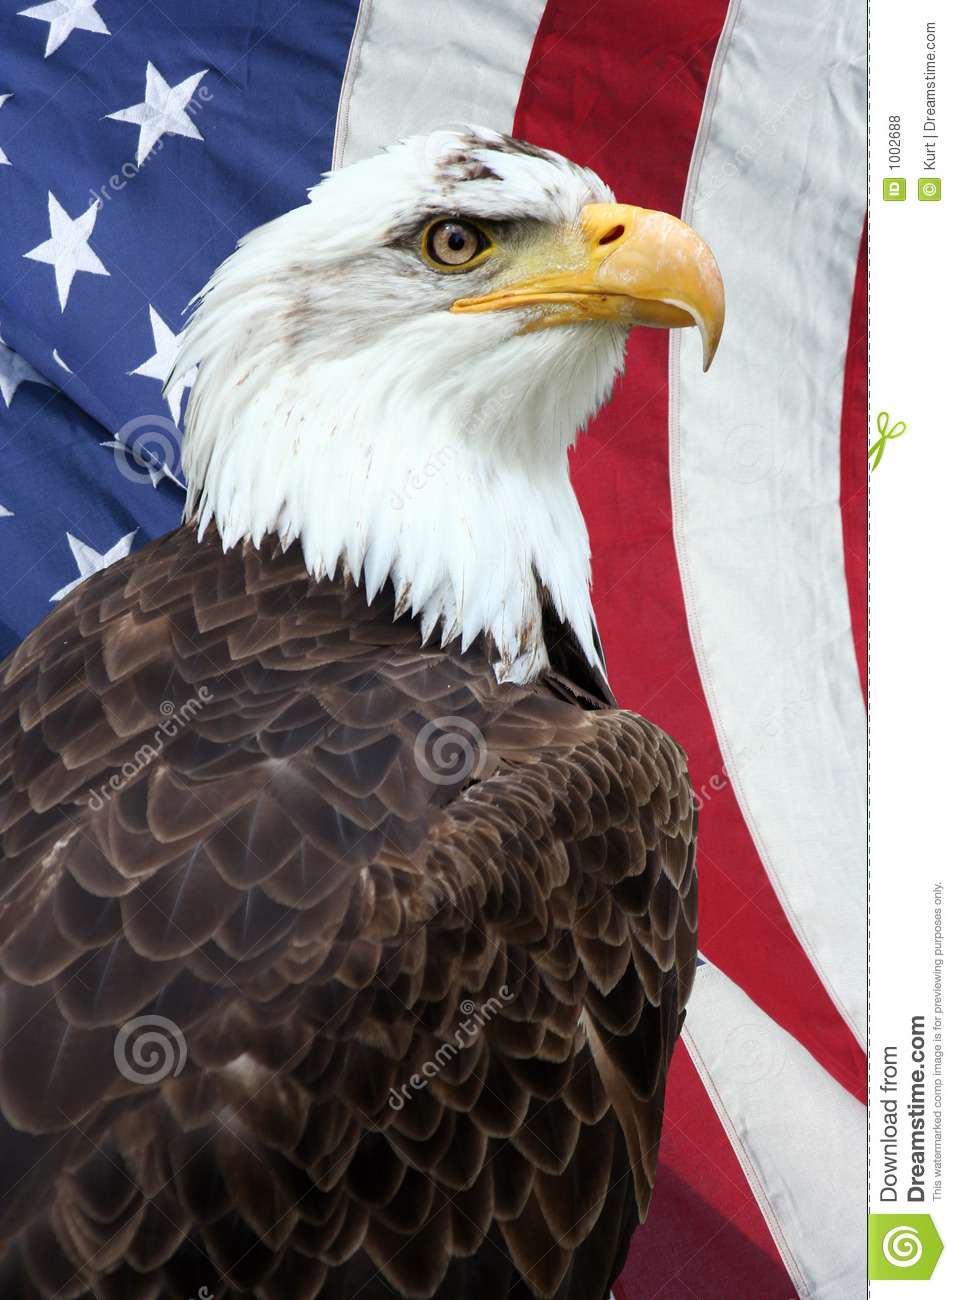 American eagle - Wiktionary